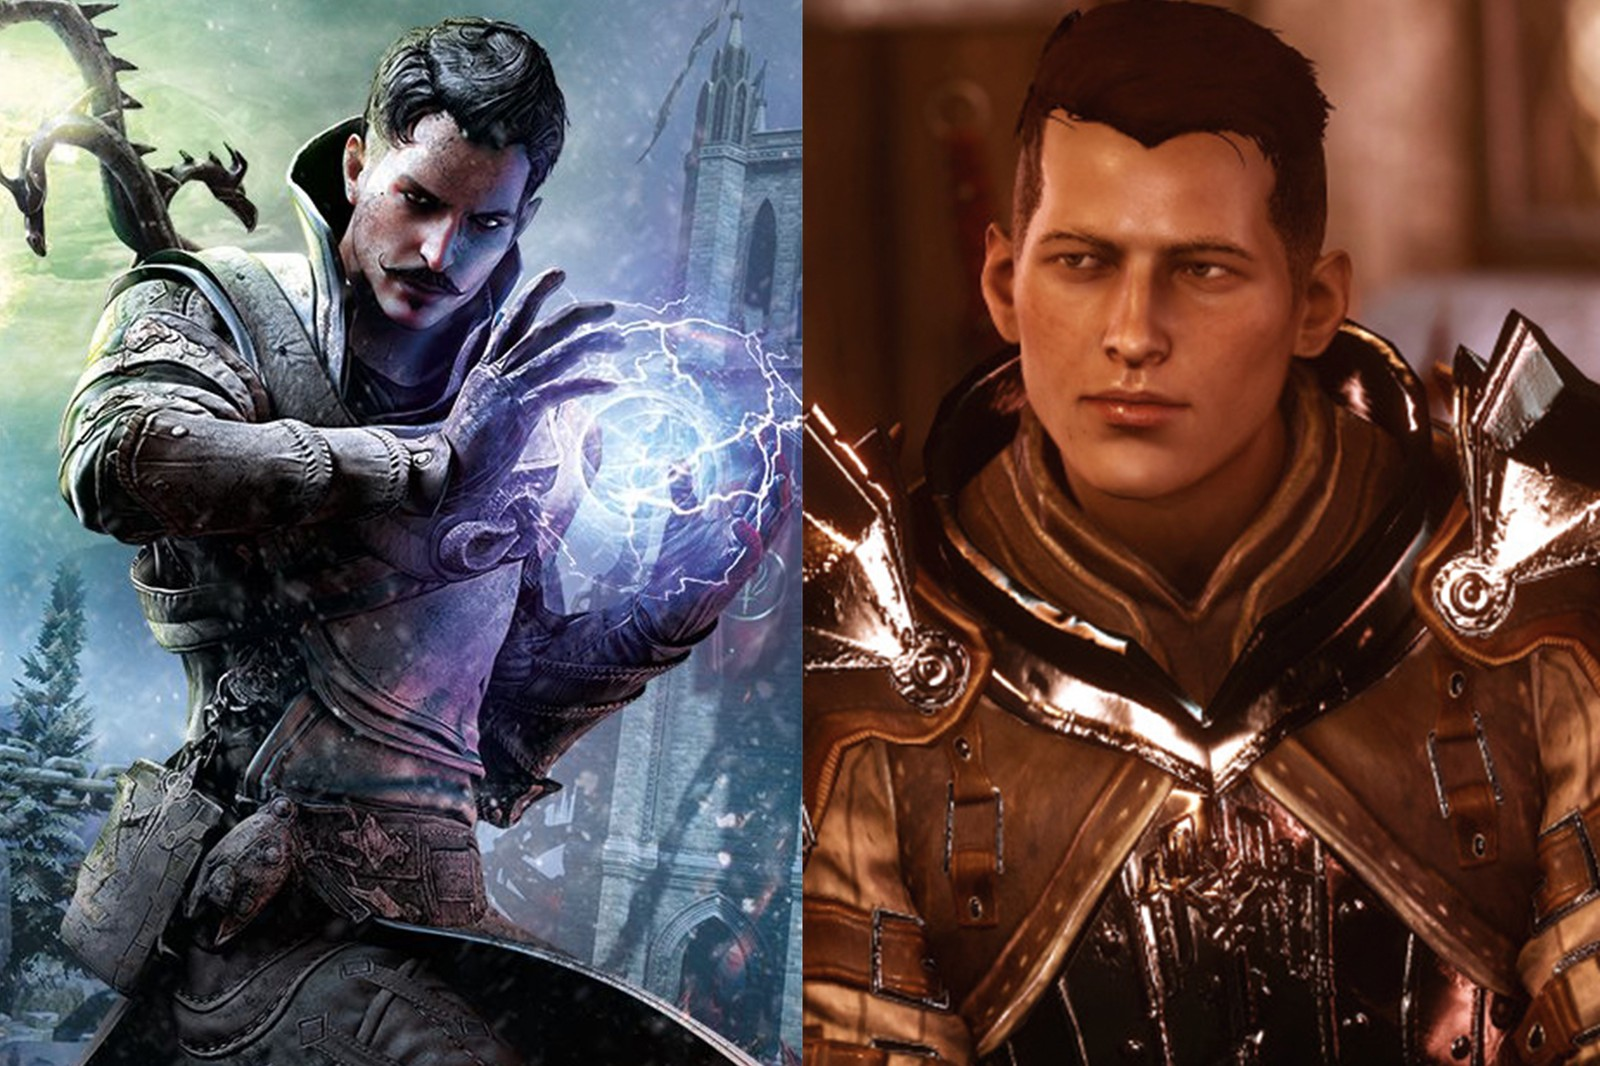 Dragon Age Inquisition Krem The Sims LGBTQ Video Games Characters Gaming Queer Avatars